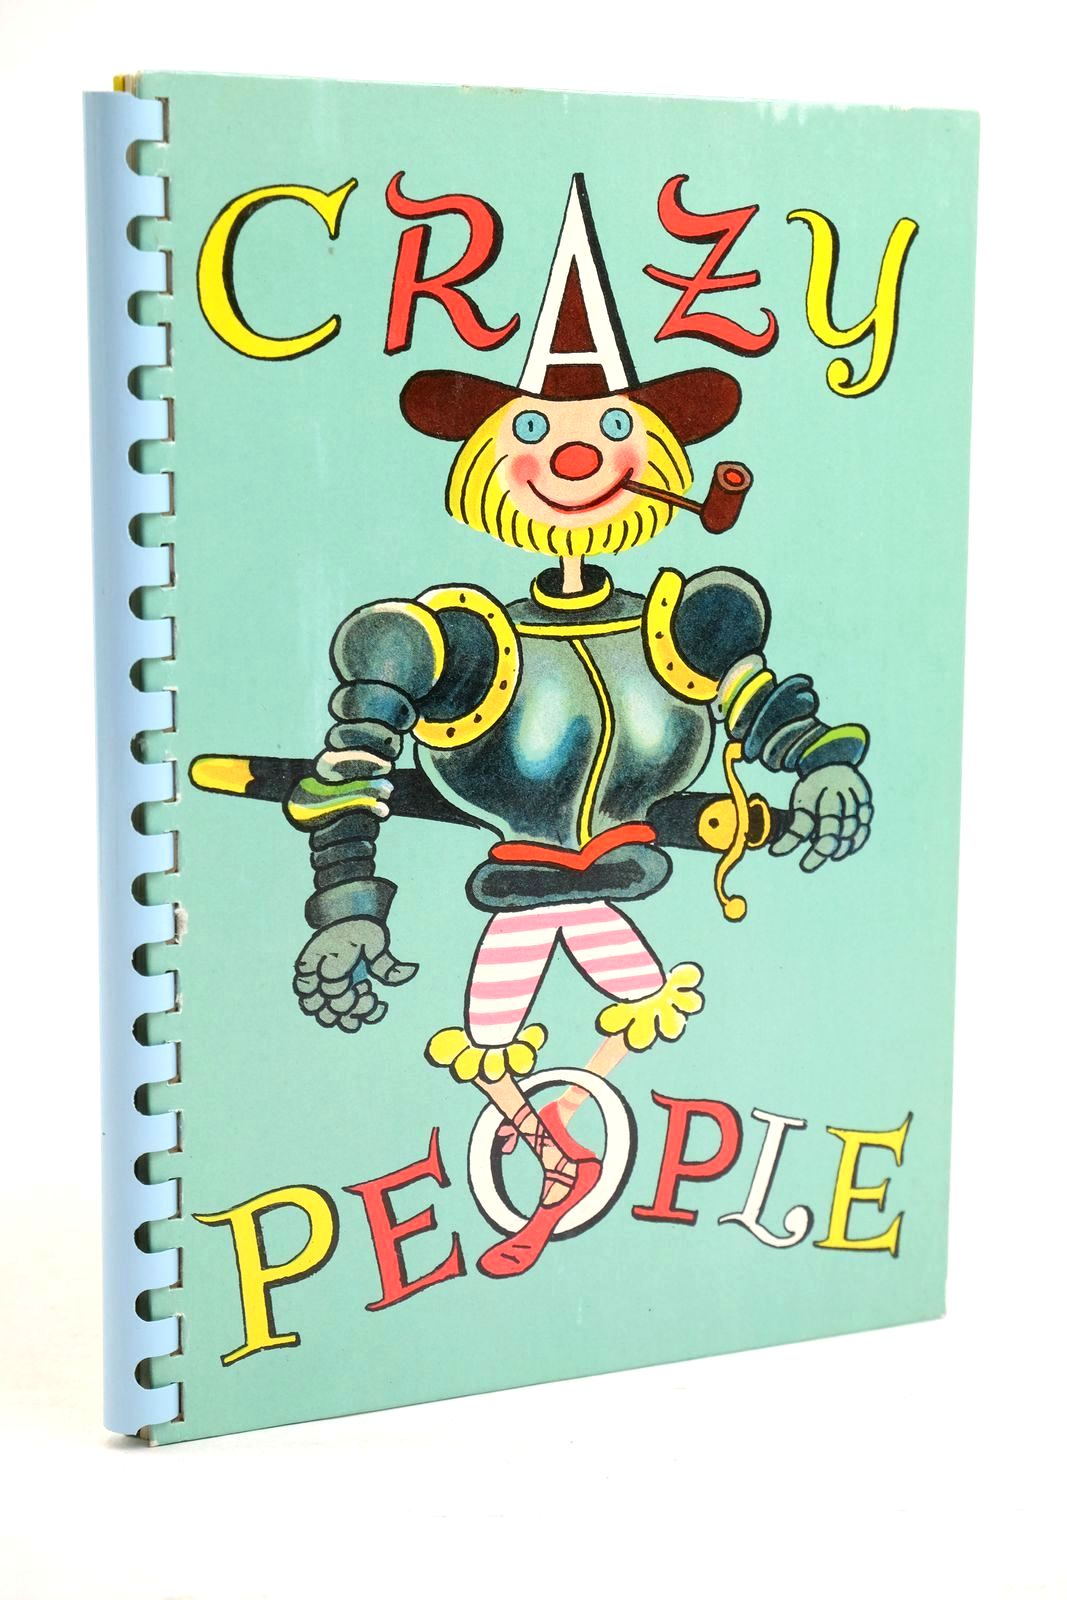 Photo of 8192 CRAZY PEOPLE- Stock Number: 1320878